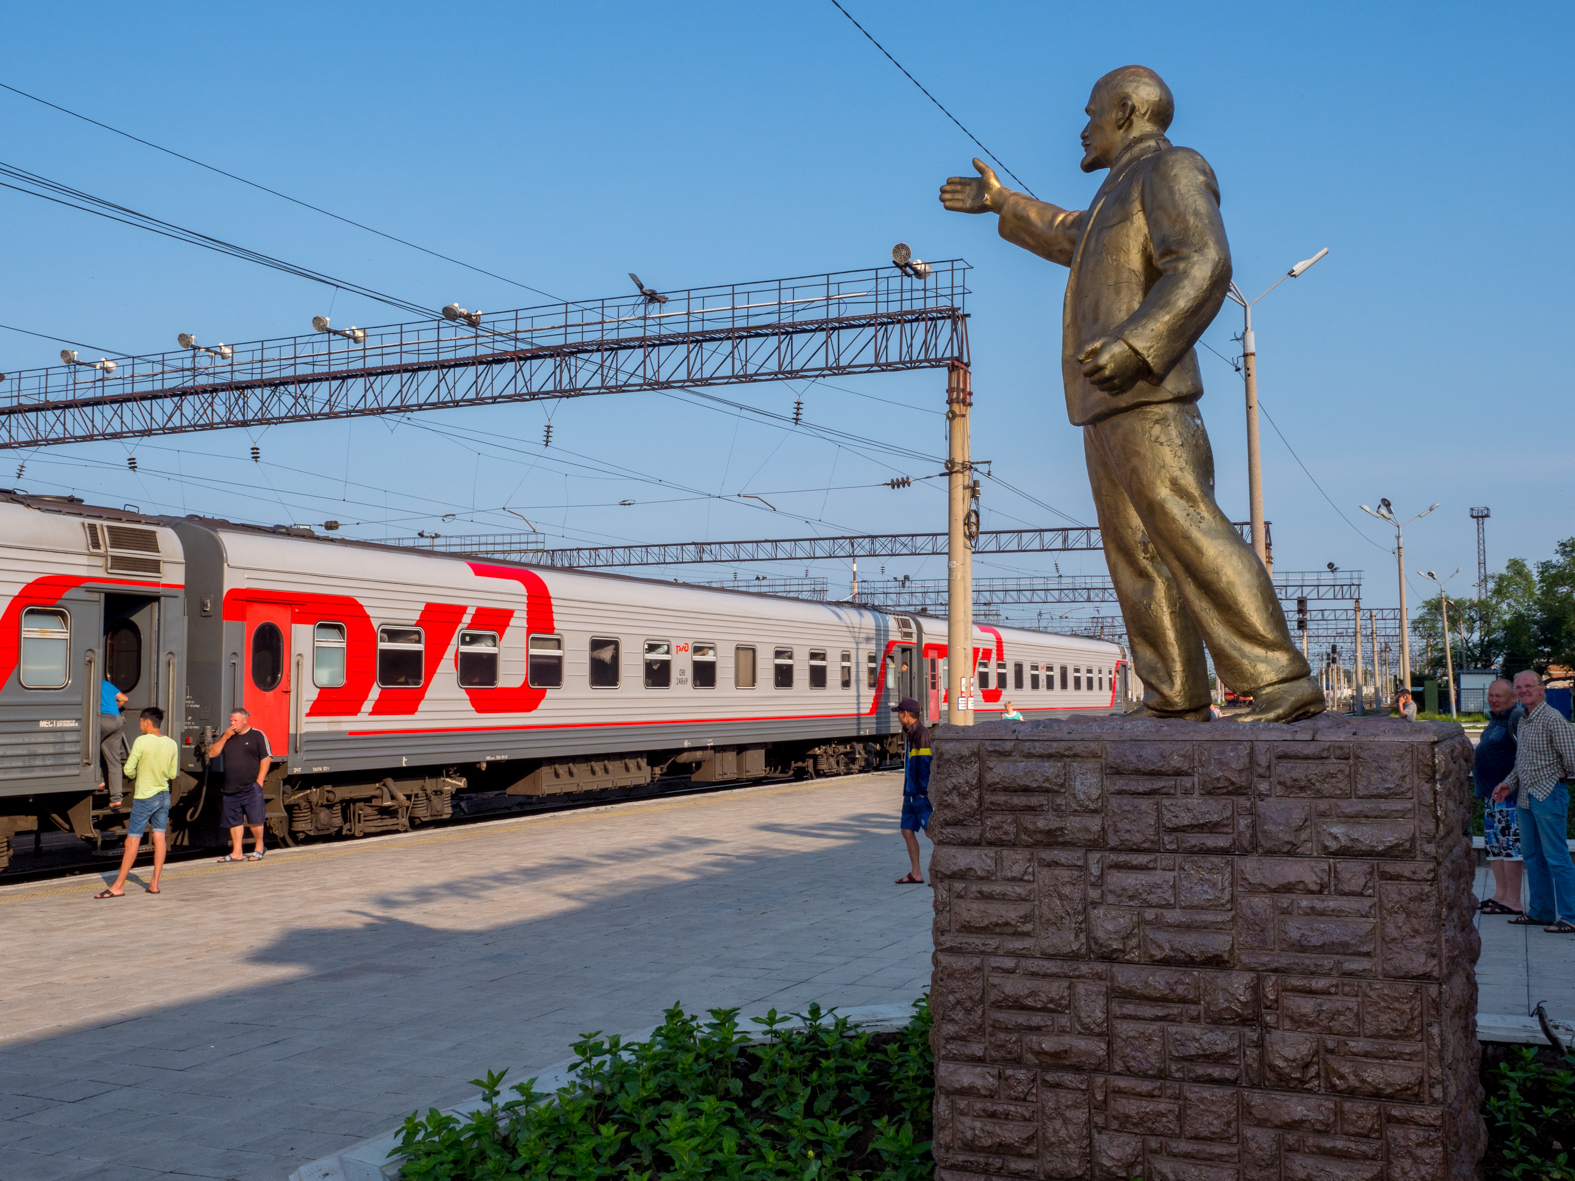 On the station platform at Belogorsk, Amur Oblas, a golden statue of Lenin gestures towards the Trans Siberian. The Trans-Siberian Railway from Moscow-Vladivostok, spanning a length of 9,289km, is the longest uninterrupted single country train journey in the world. It has connected Moscow with Vladivostok since 1916, and is still being expanded. It was built between 1891 and 1916 under the supervision of Russian government ministers personally appointed by Tsar Alexander III and his son, the Tsarevich Nicholas (later Tsar Nicholas II).